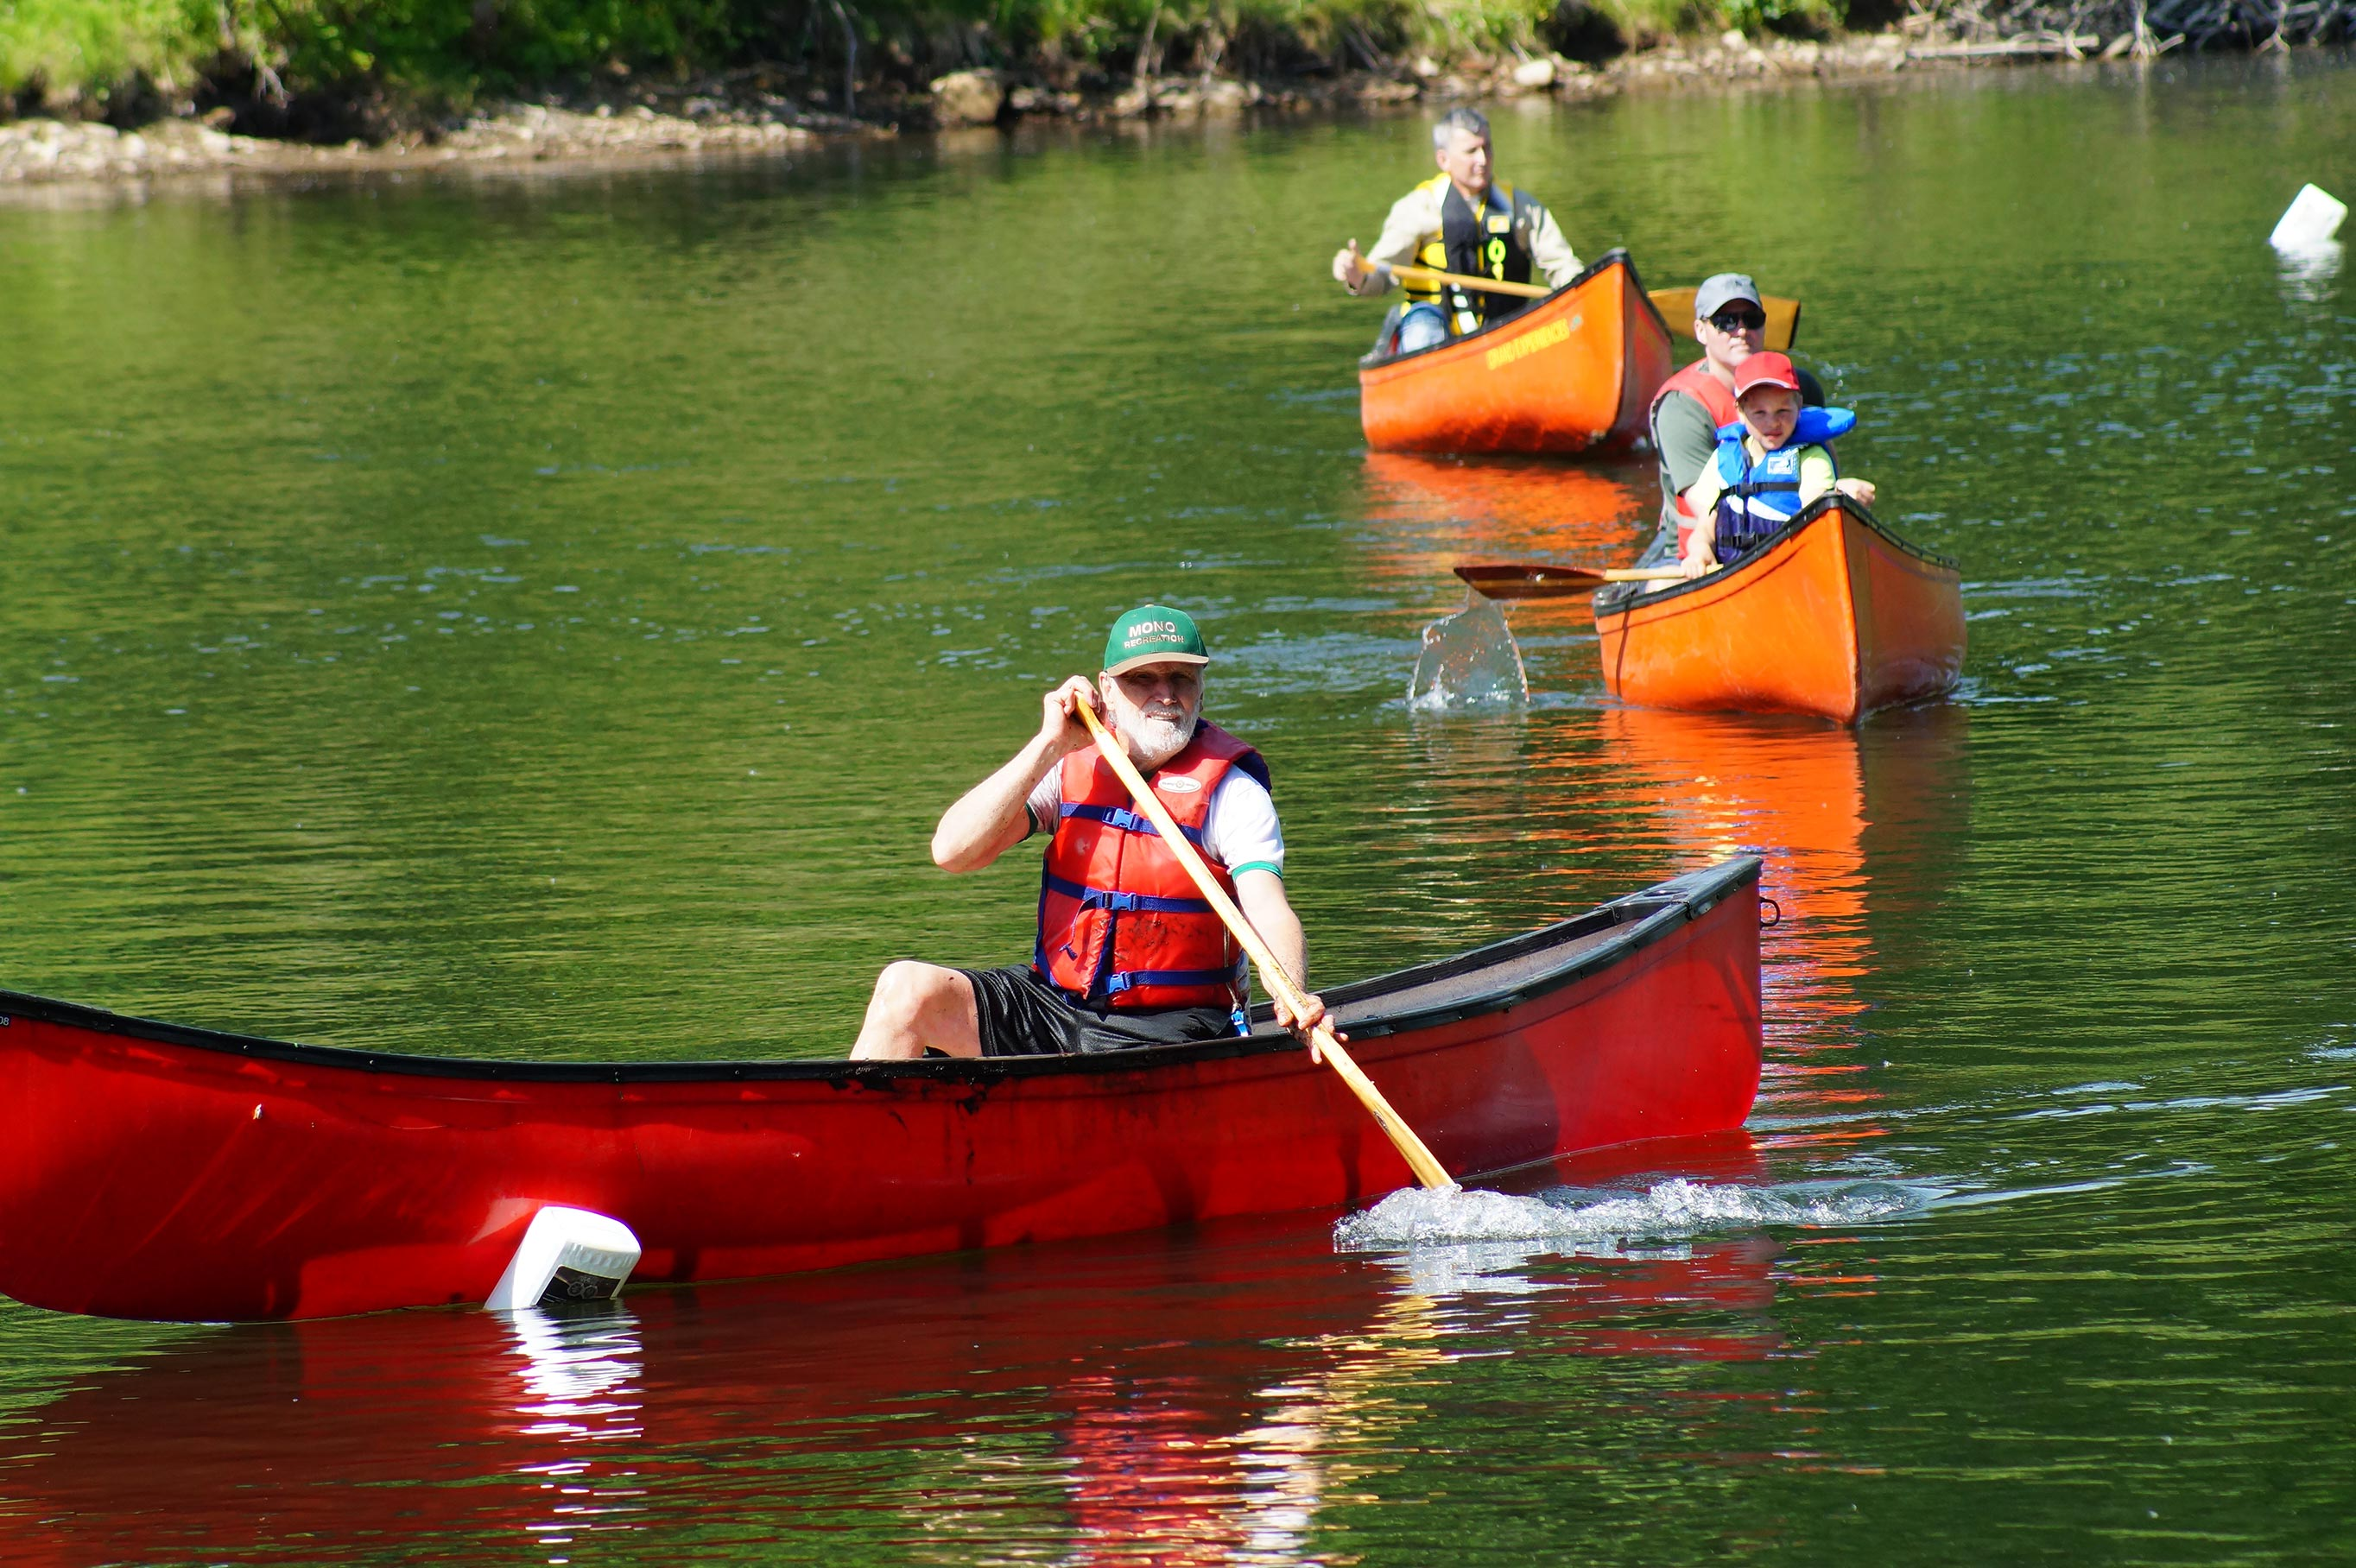 Learn to Canoe instructor